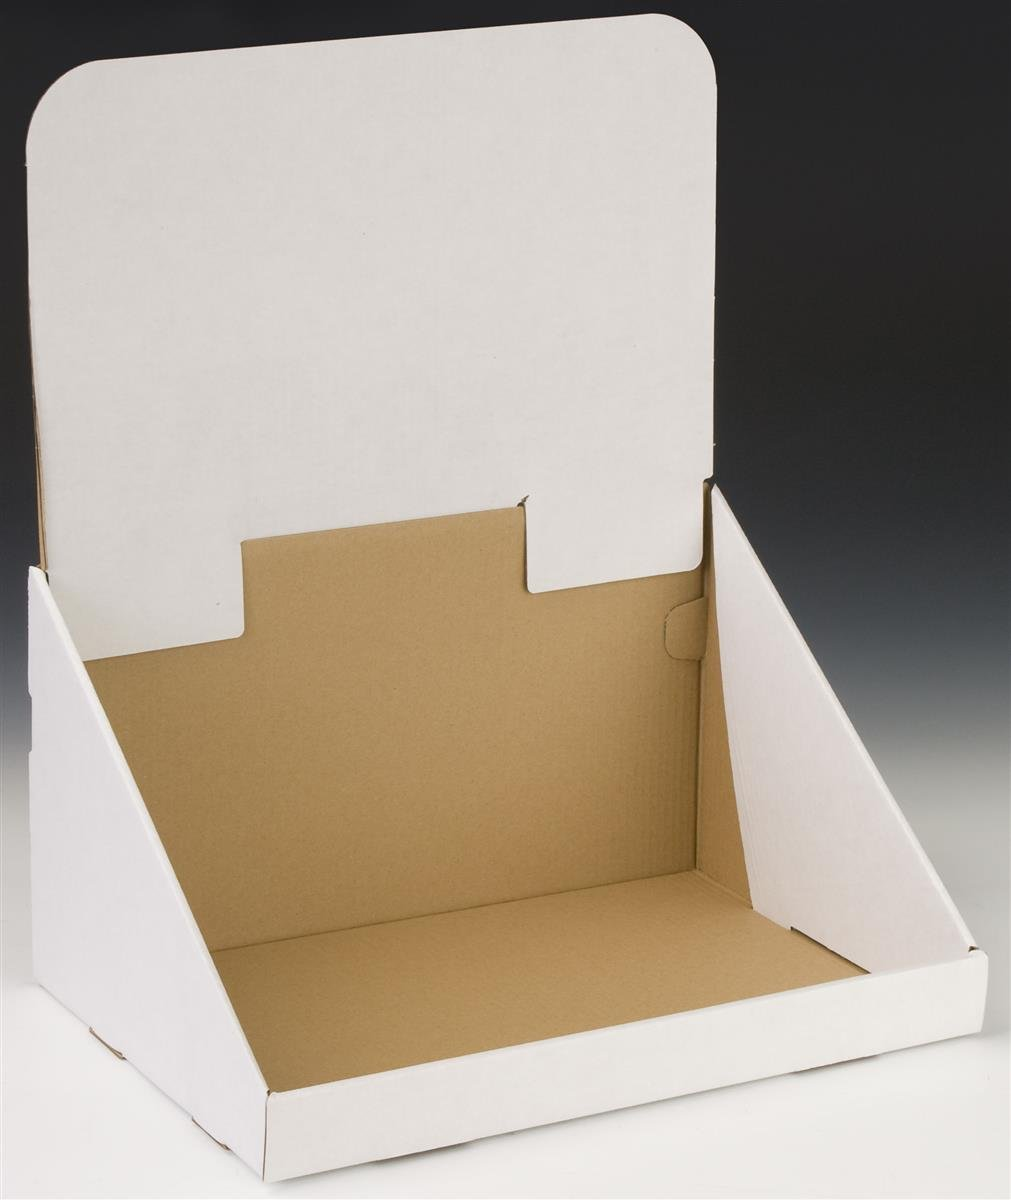 Set of 20, White Countertop Bin Display with Removable Header, Single Compartment - Corrugated Cardboard